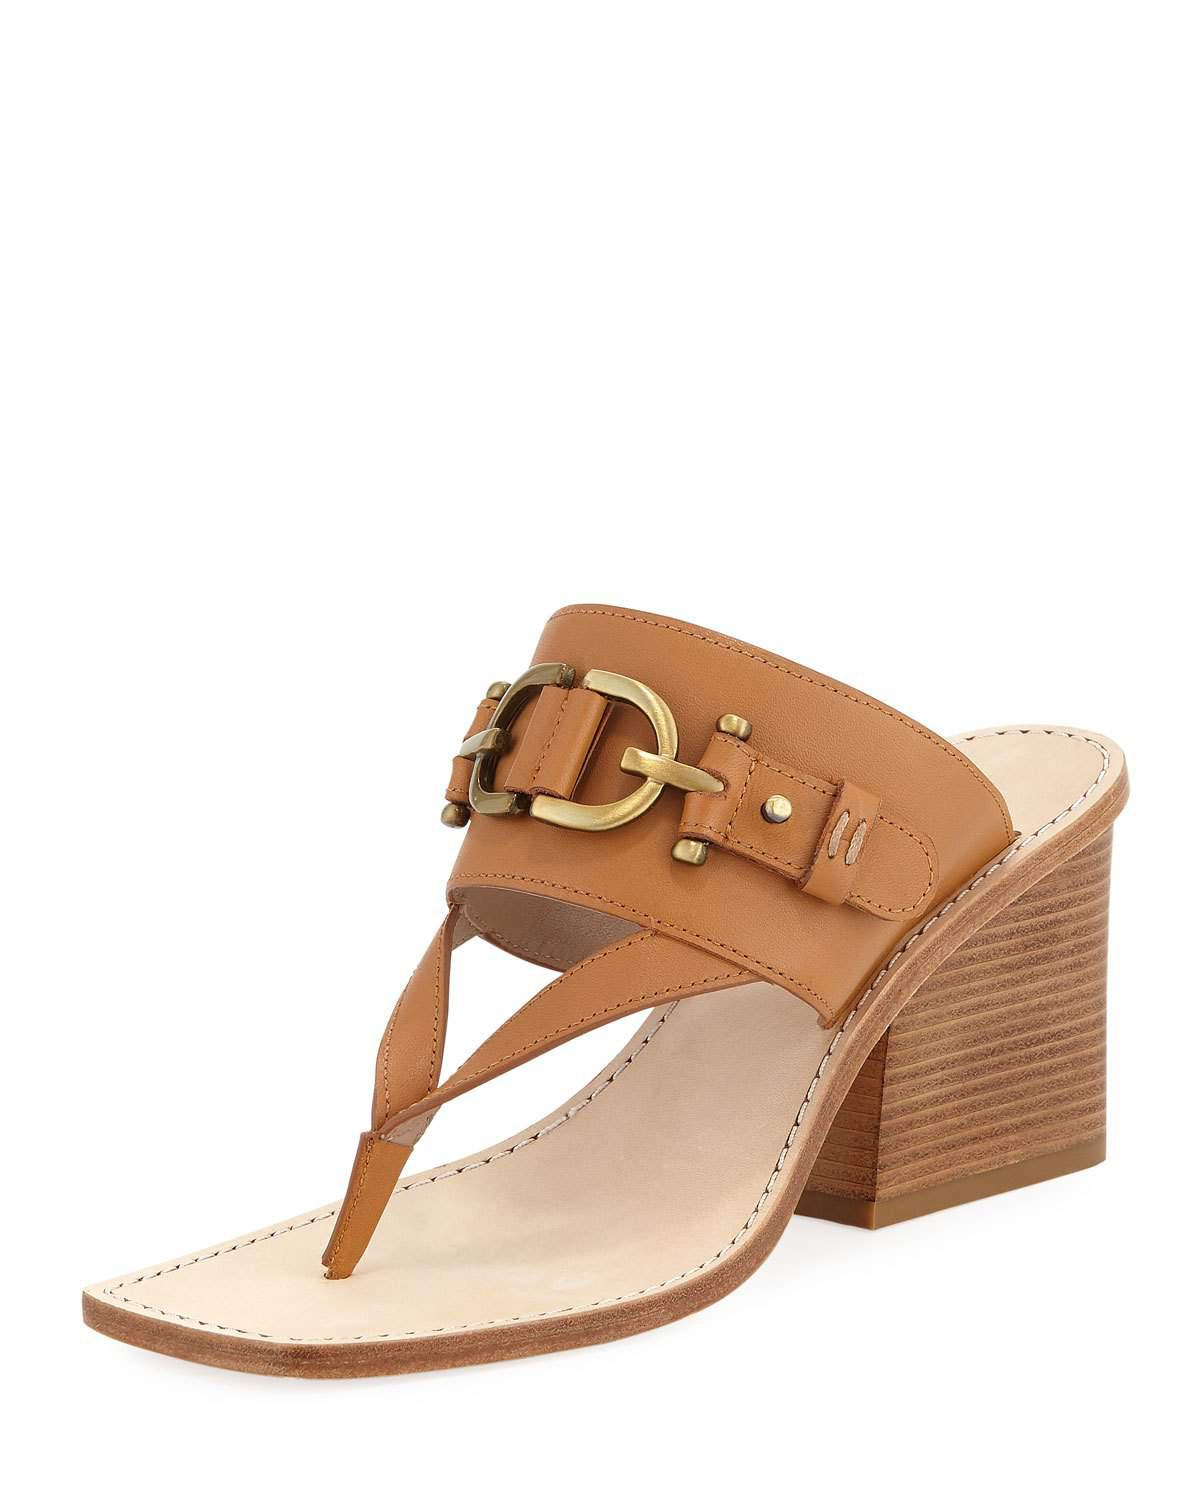 Donald J Pliner Embellished T-Strap Sandals Inexpensive online cheap professional cheap sale sale pay with visa for sale cheap perfect GNN93E